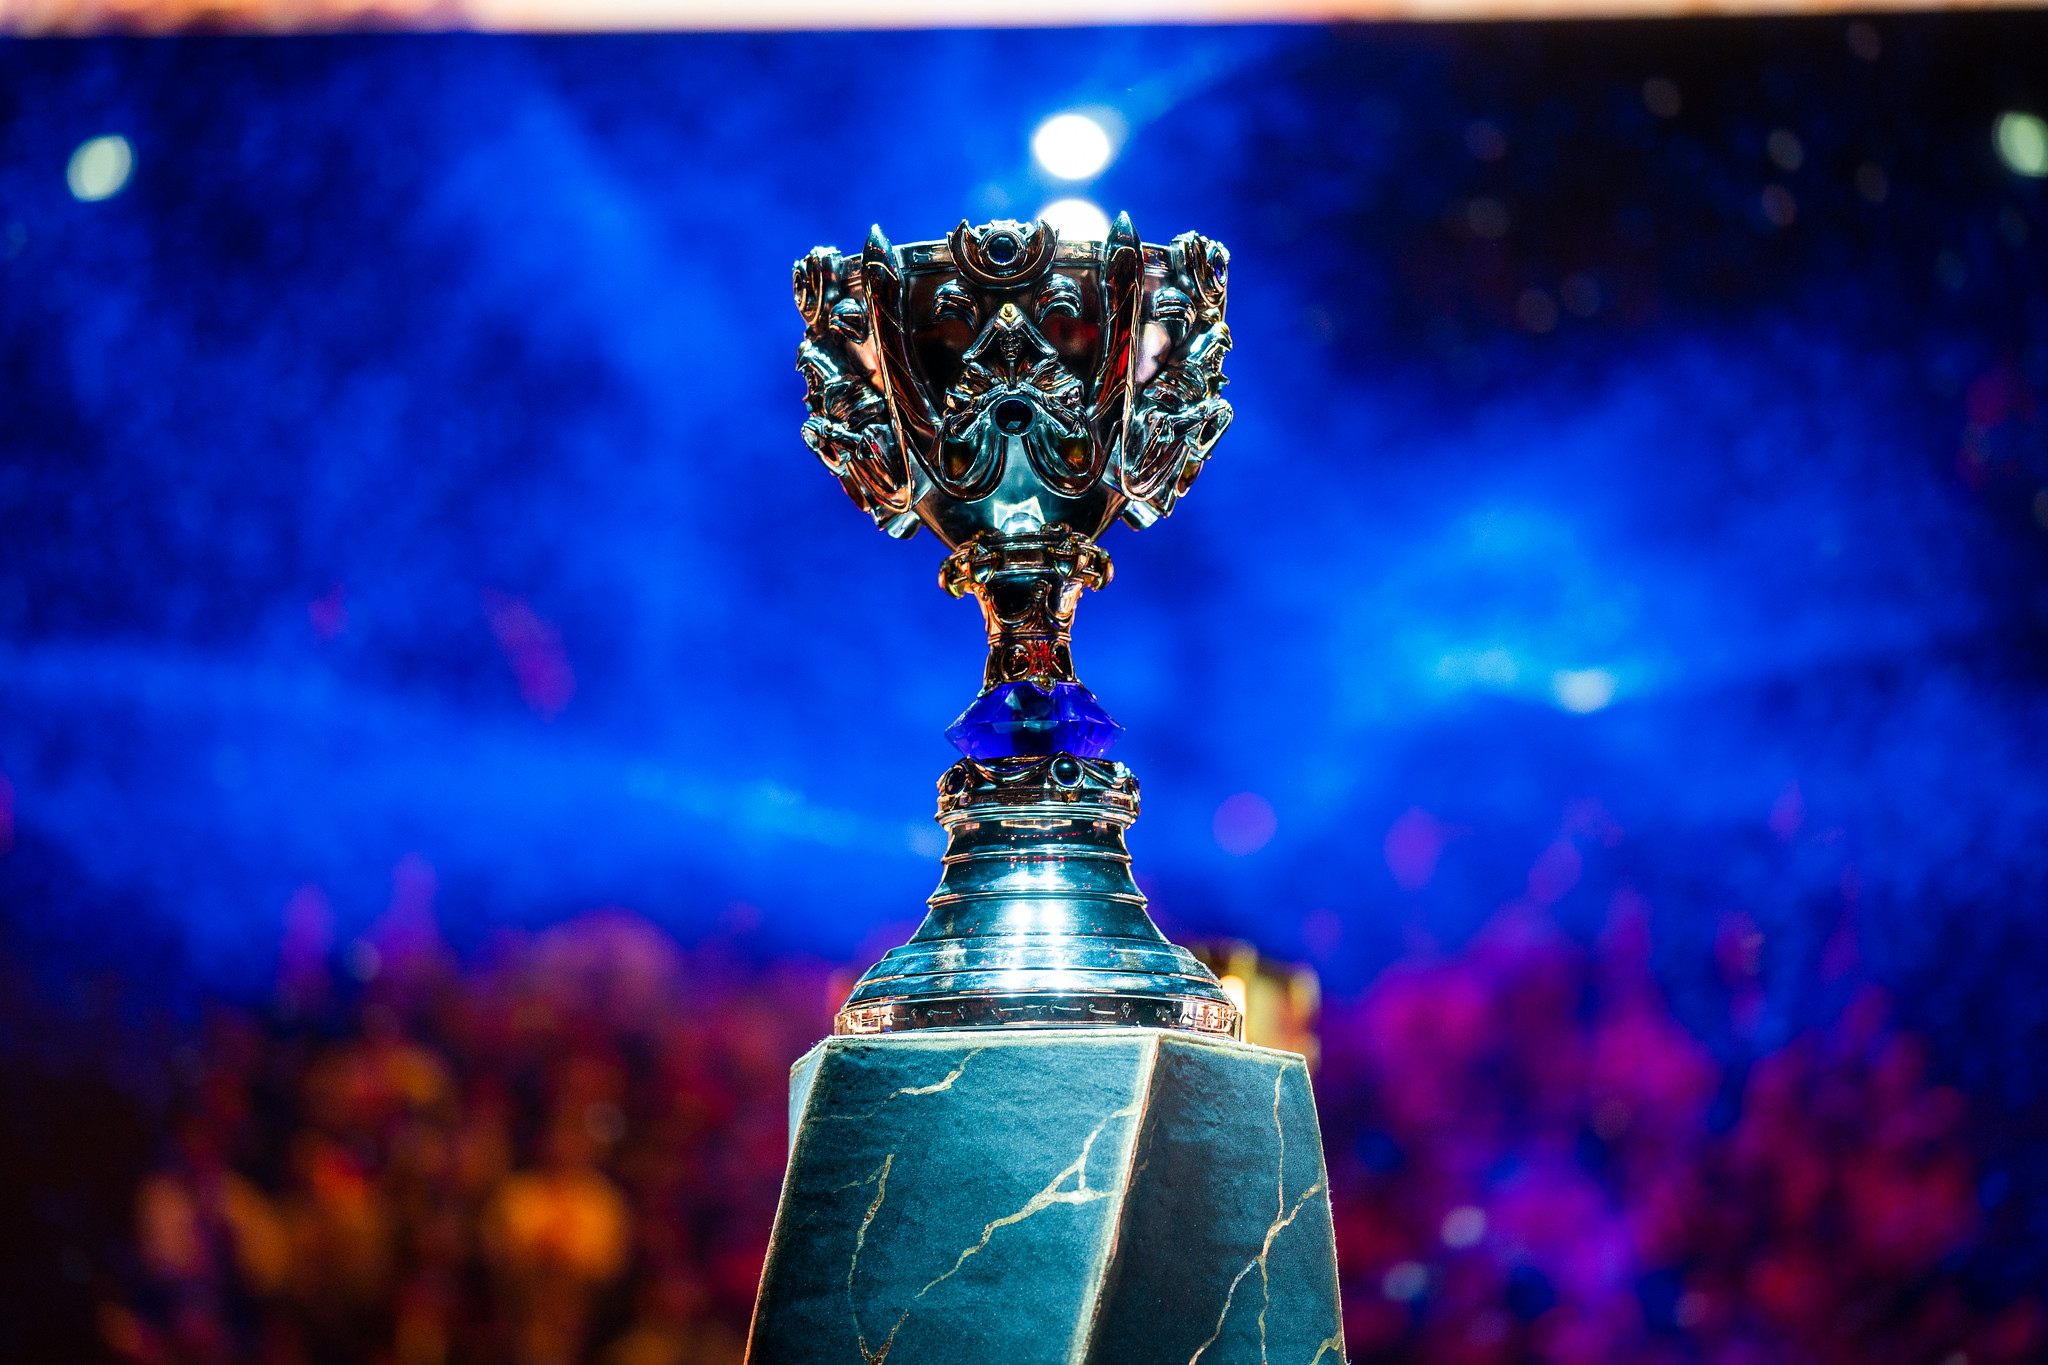 Aquí está el calendario del Campeonato Mundial de League of Legends 2020